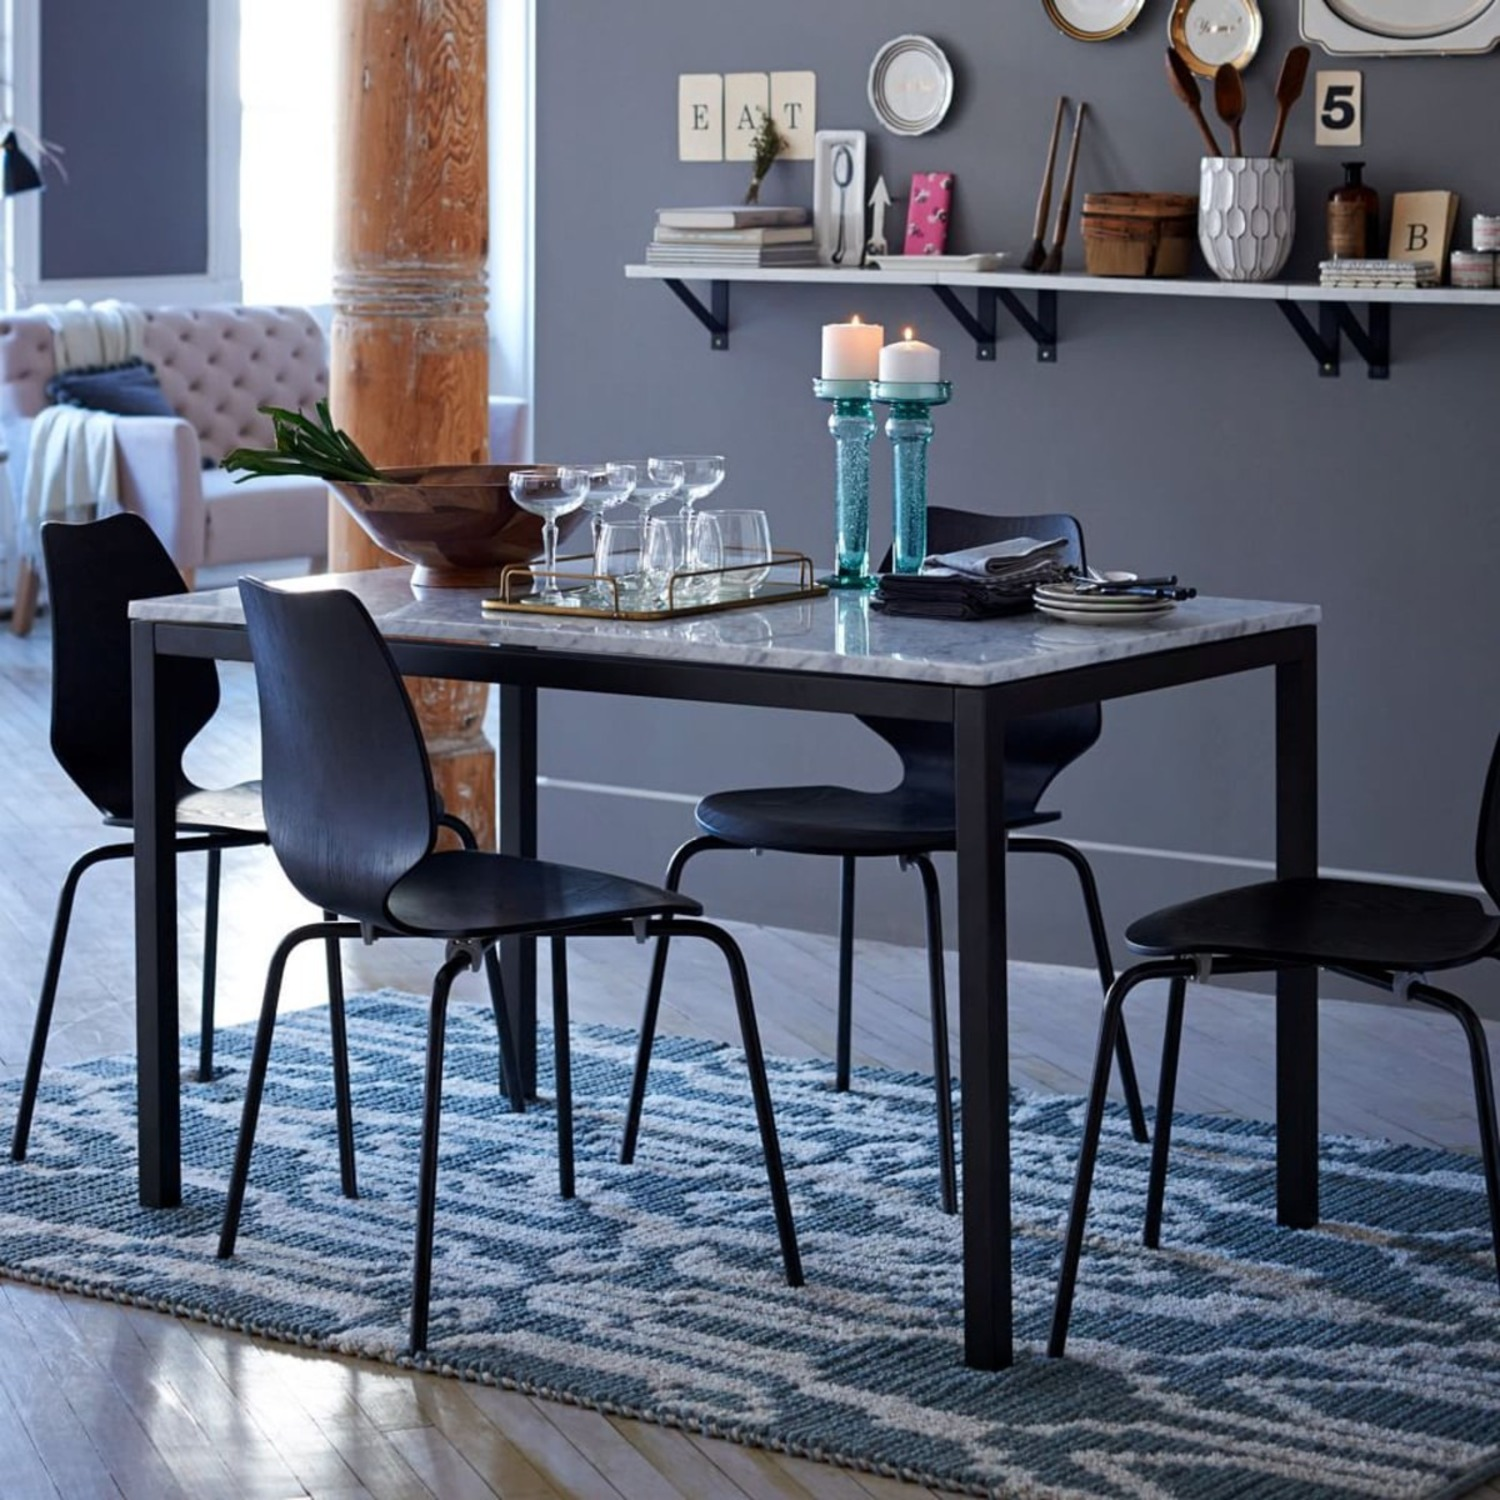 West Elm Marble Dining Table - image-1